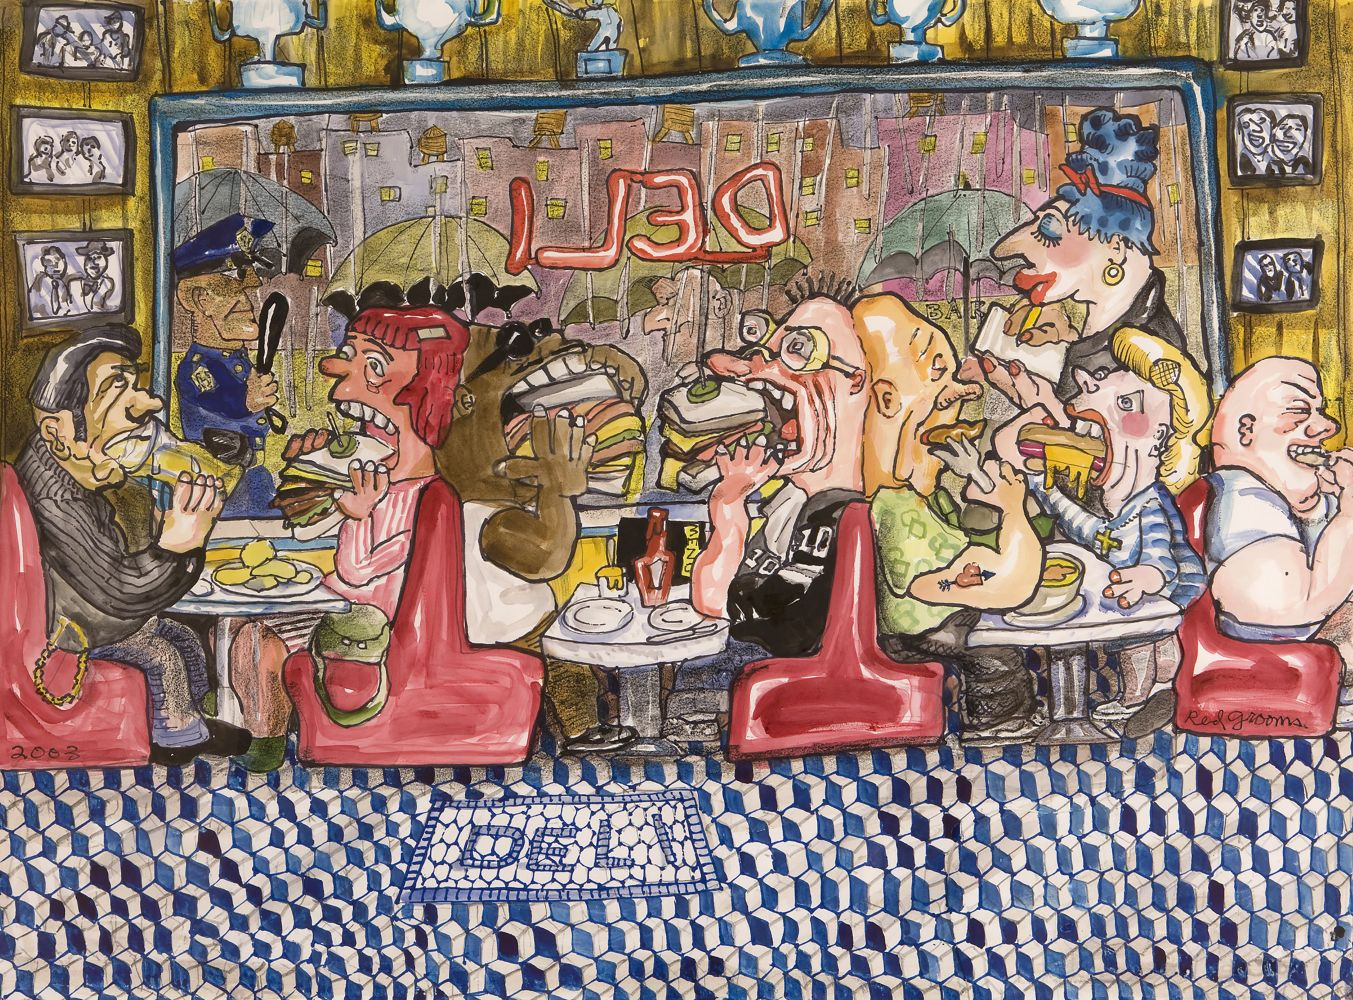 Ink and crayon on paper artwork by Red Grooms of people eating inside of a deli and emphasizing their large bites of food such as sandwiches and hot dogs